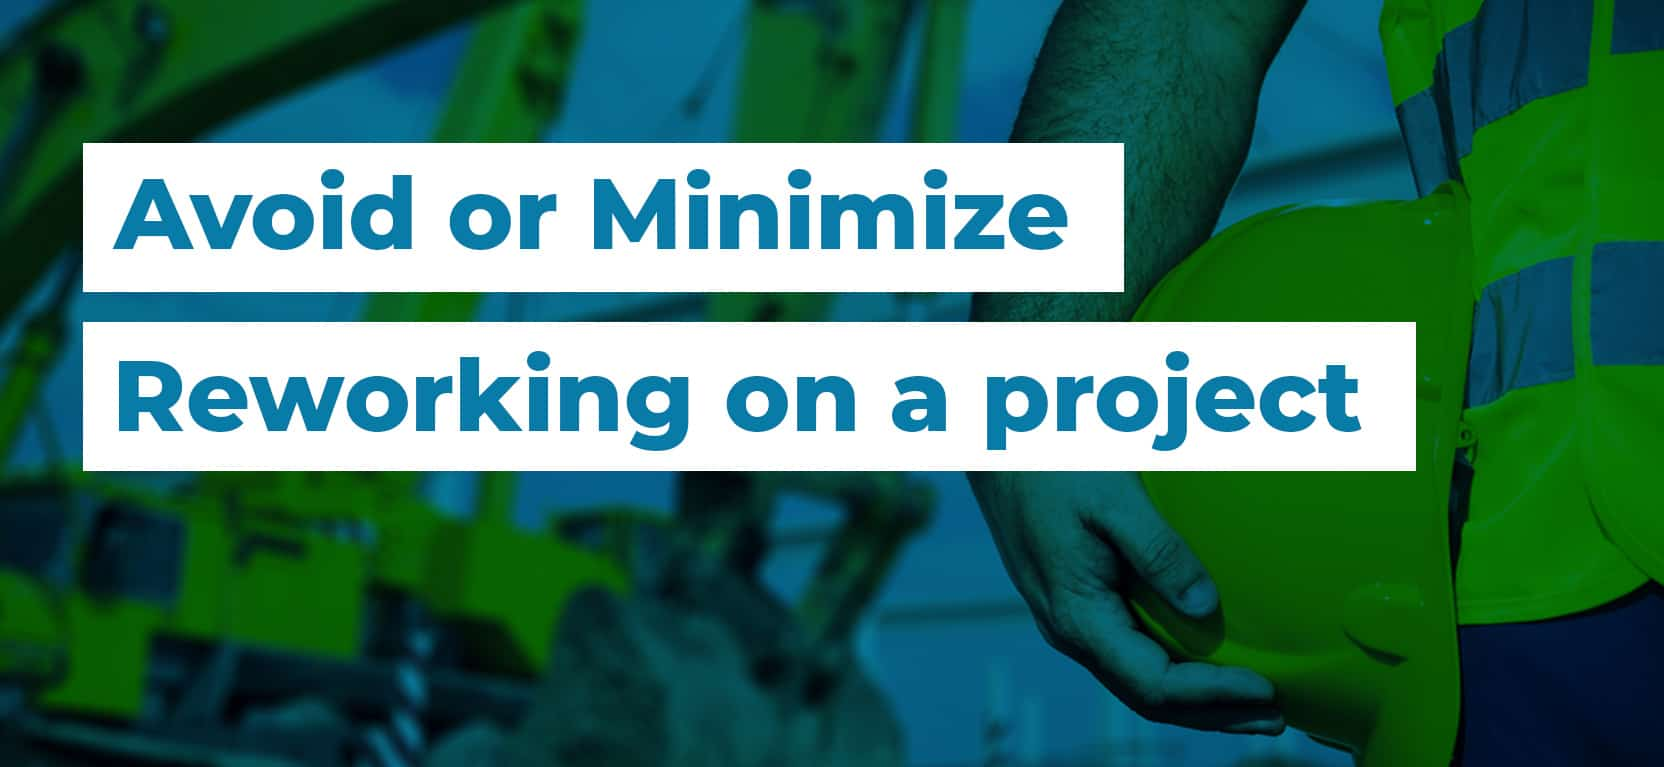 10 Avoid or Minimize Reworking on a project3